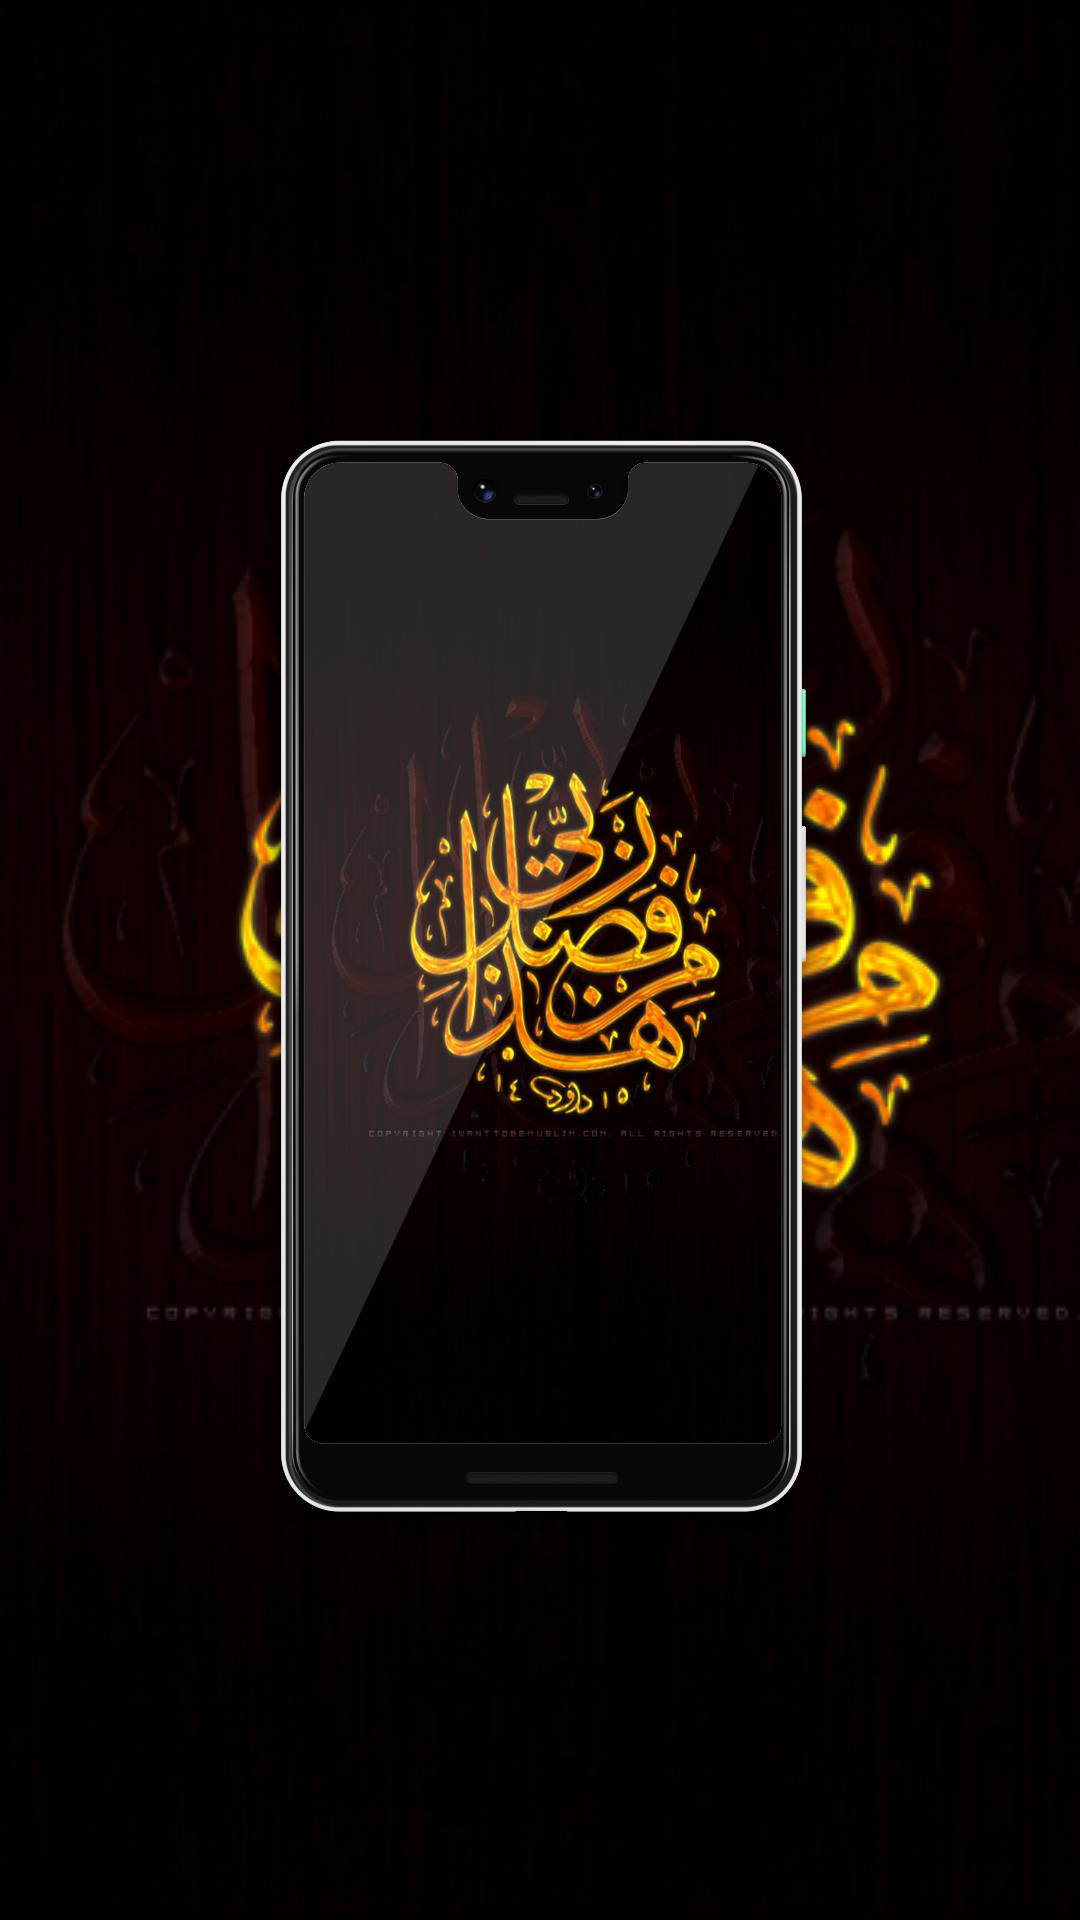 Kaligrafi Wallpaper Maulid Nabi Muhammad Saw 2019 For Android